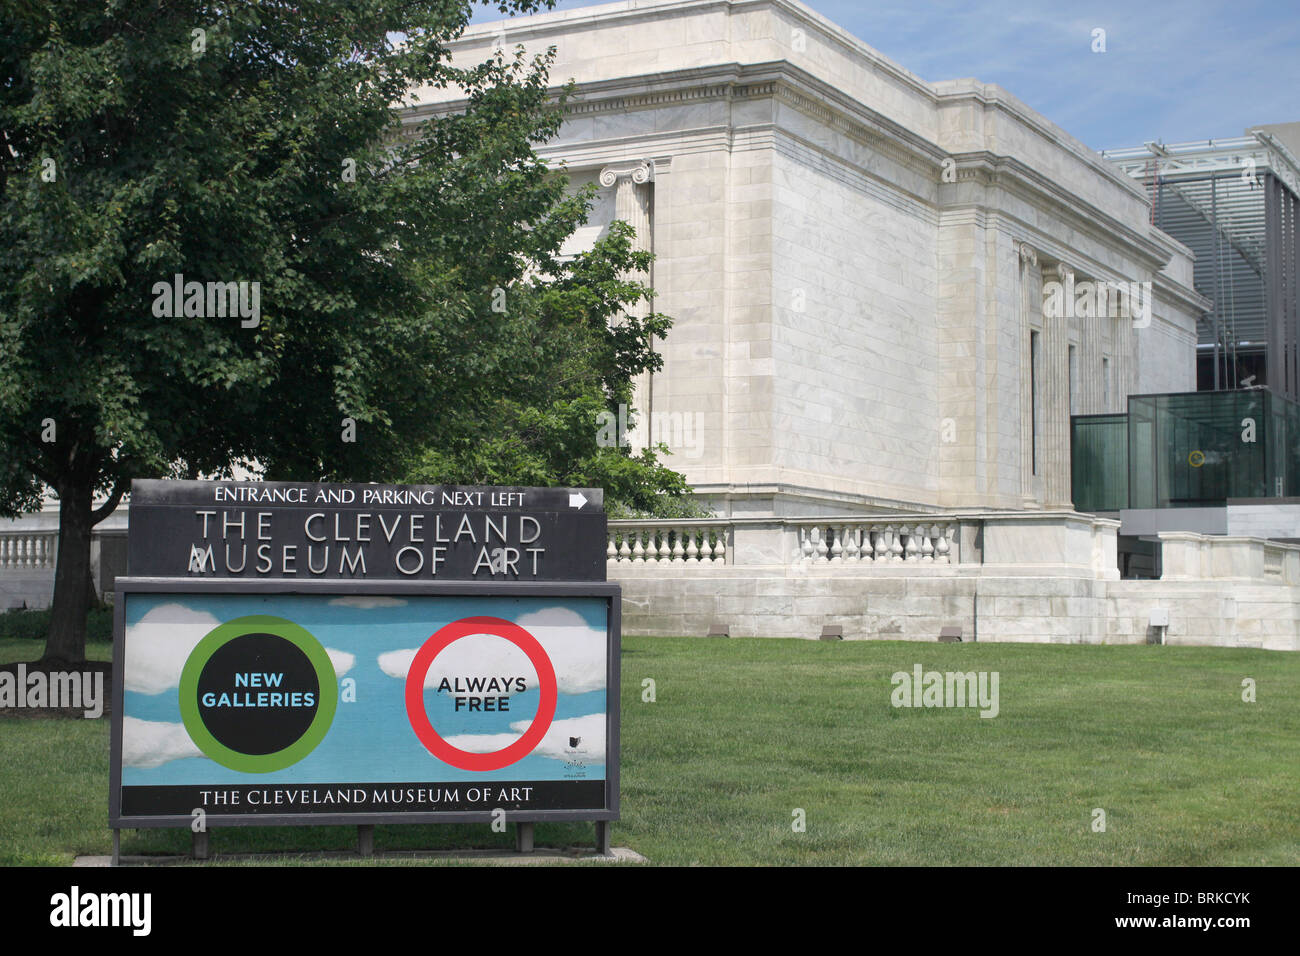 Cleveland Museum of Art - Case Western Reserve University - Cleveland Ohio Stock Photo